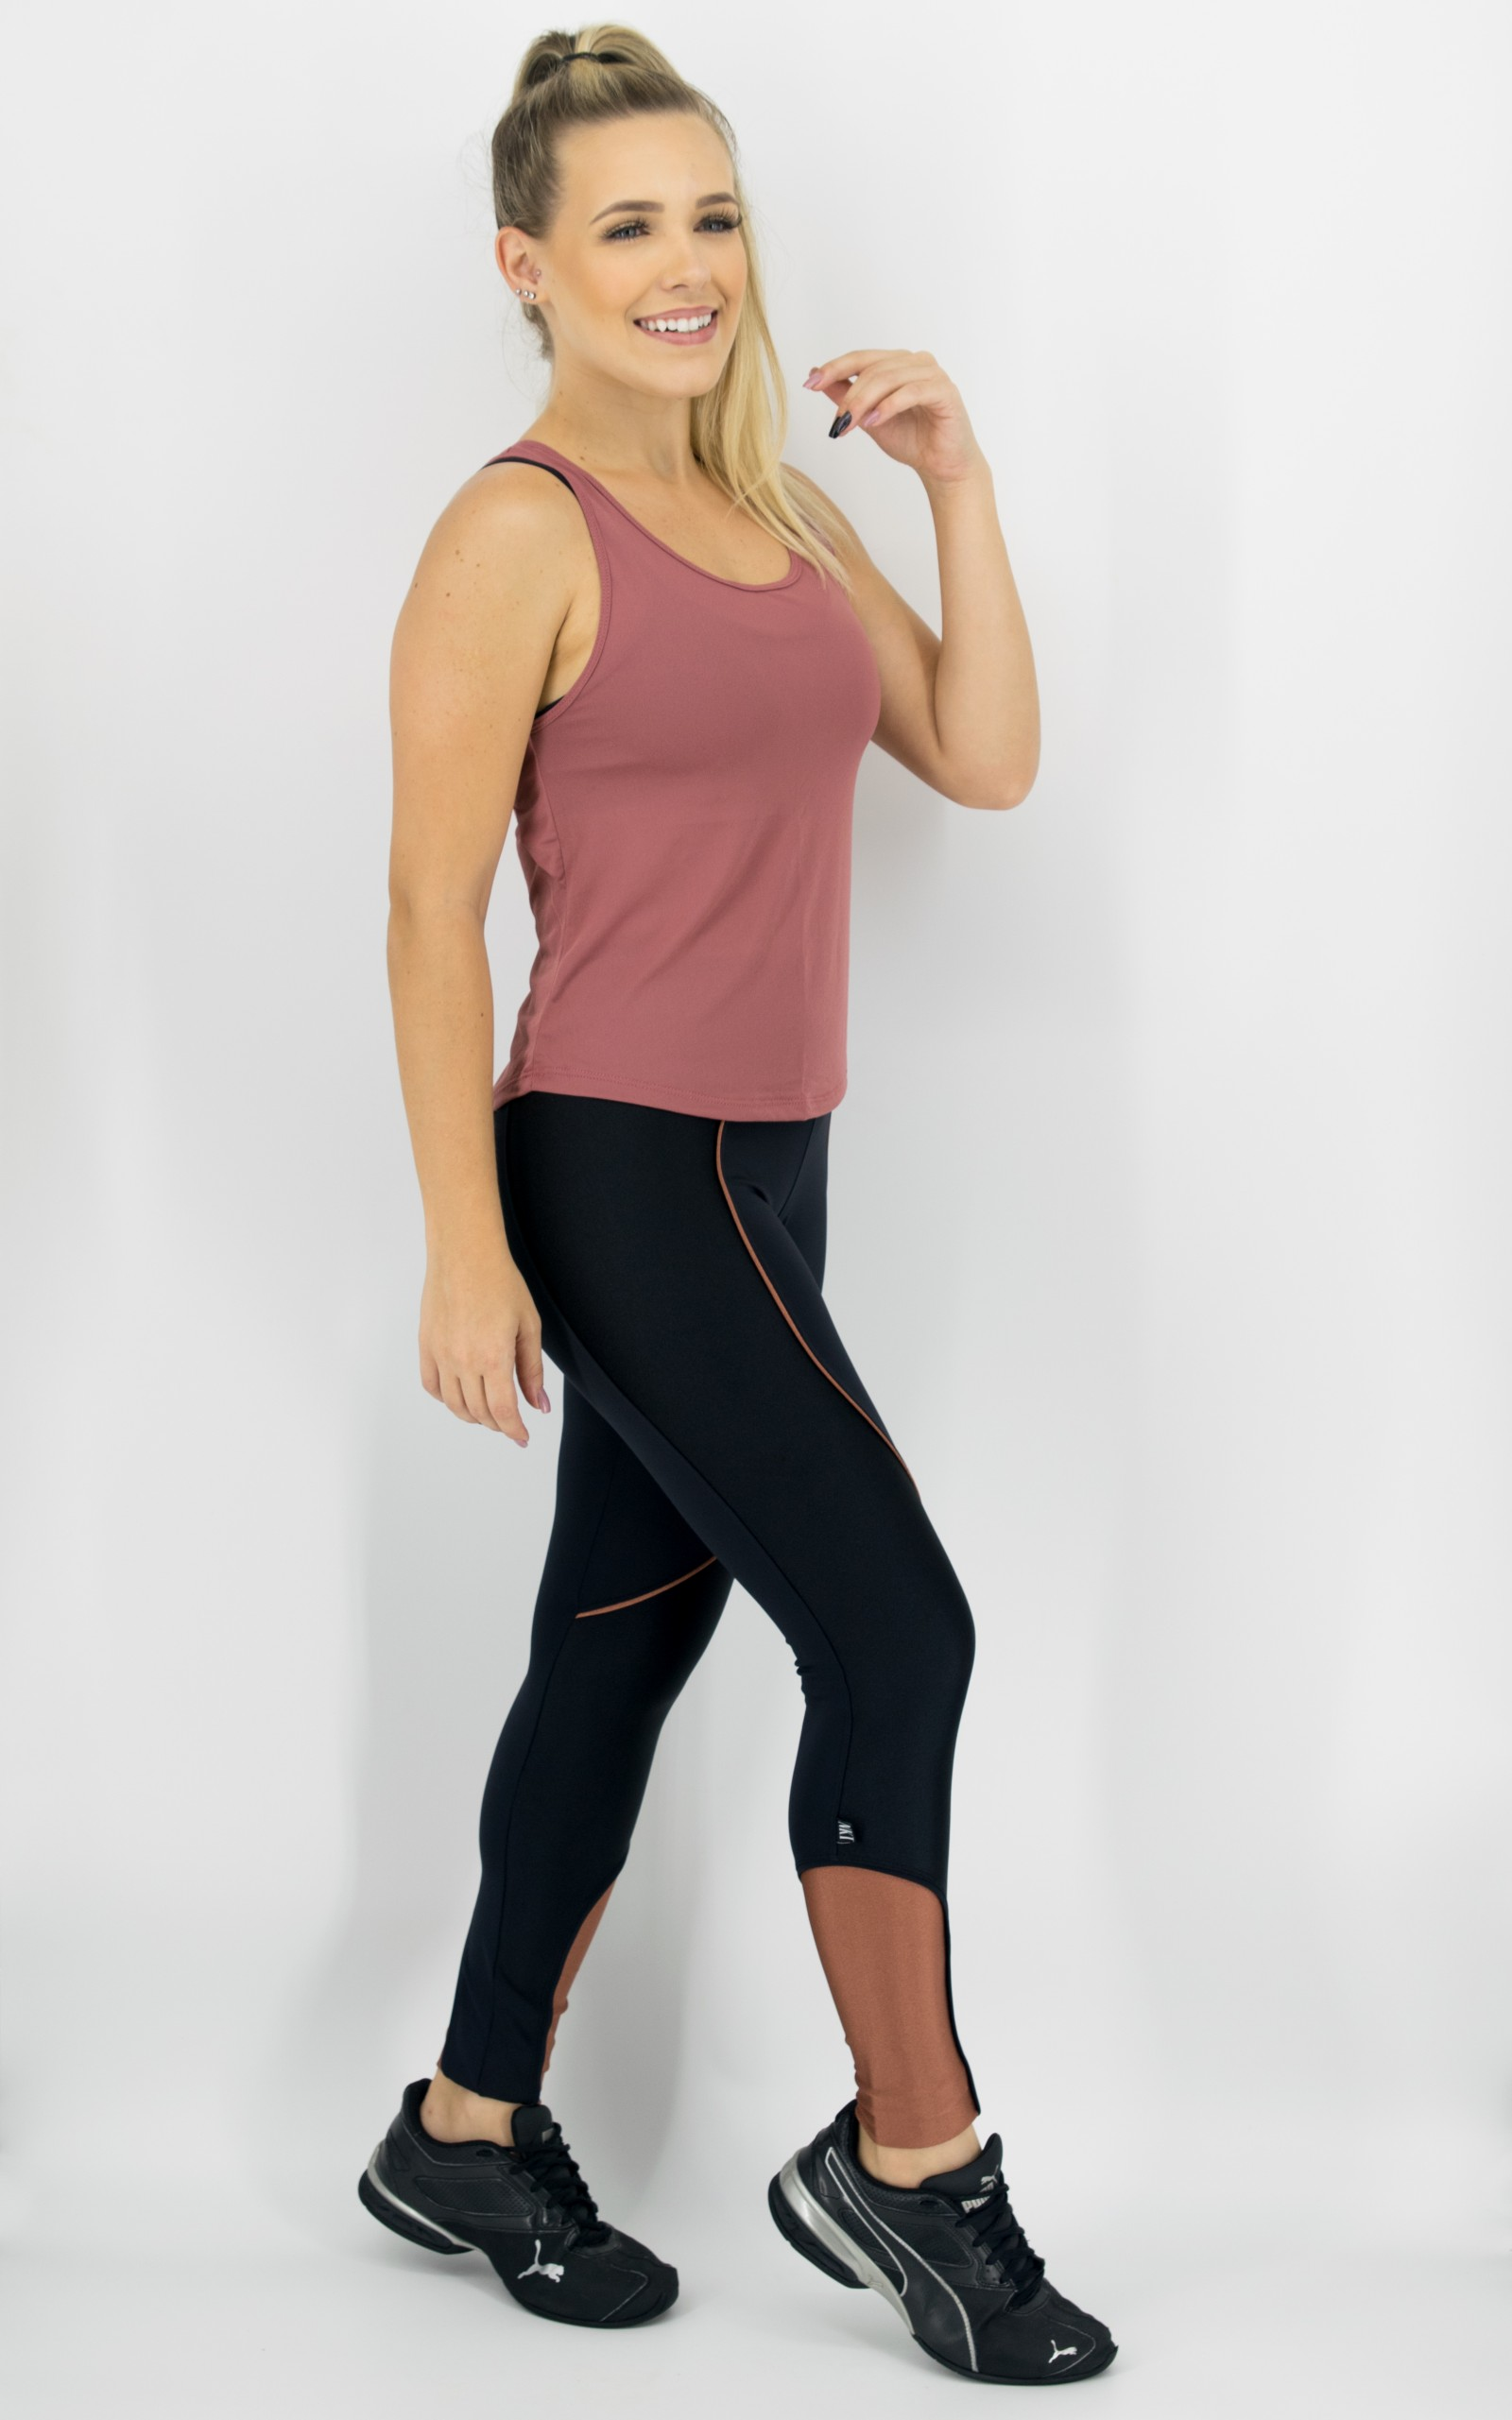 Regata Lux Blush, Coleção Move Your Body - NKT Fitwear Moda Fitness